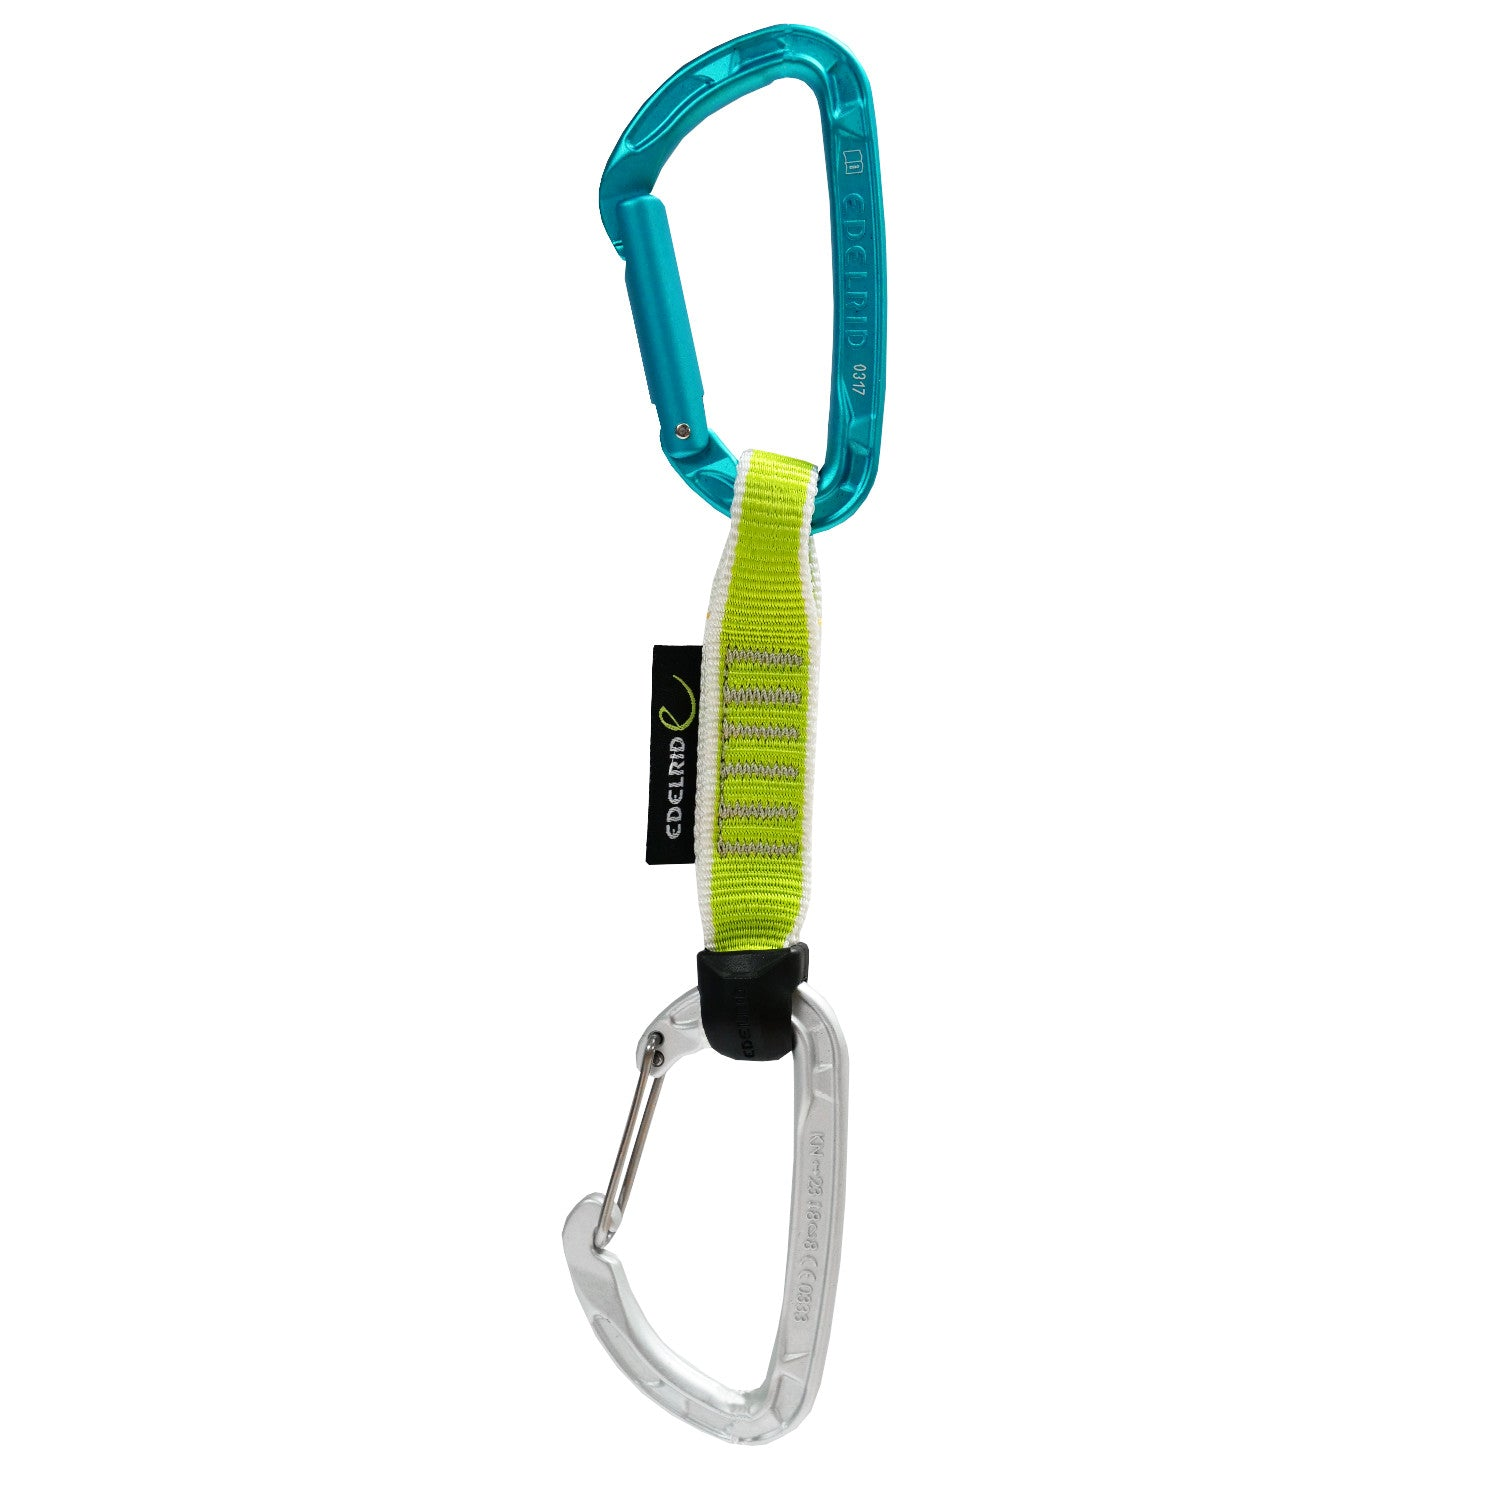 Edelrid Pure Slim Wire 12cm Quickdraw front view showing a turquoise solid gate carabiner and a grey wire gate carabiner joined by a 12cm Green sling